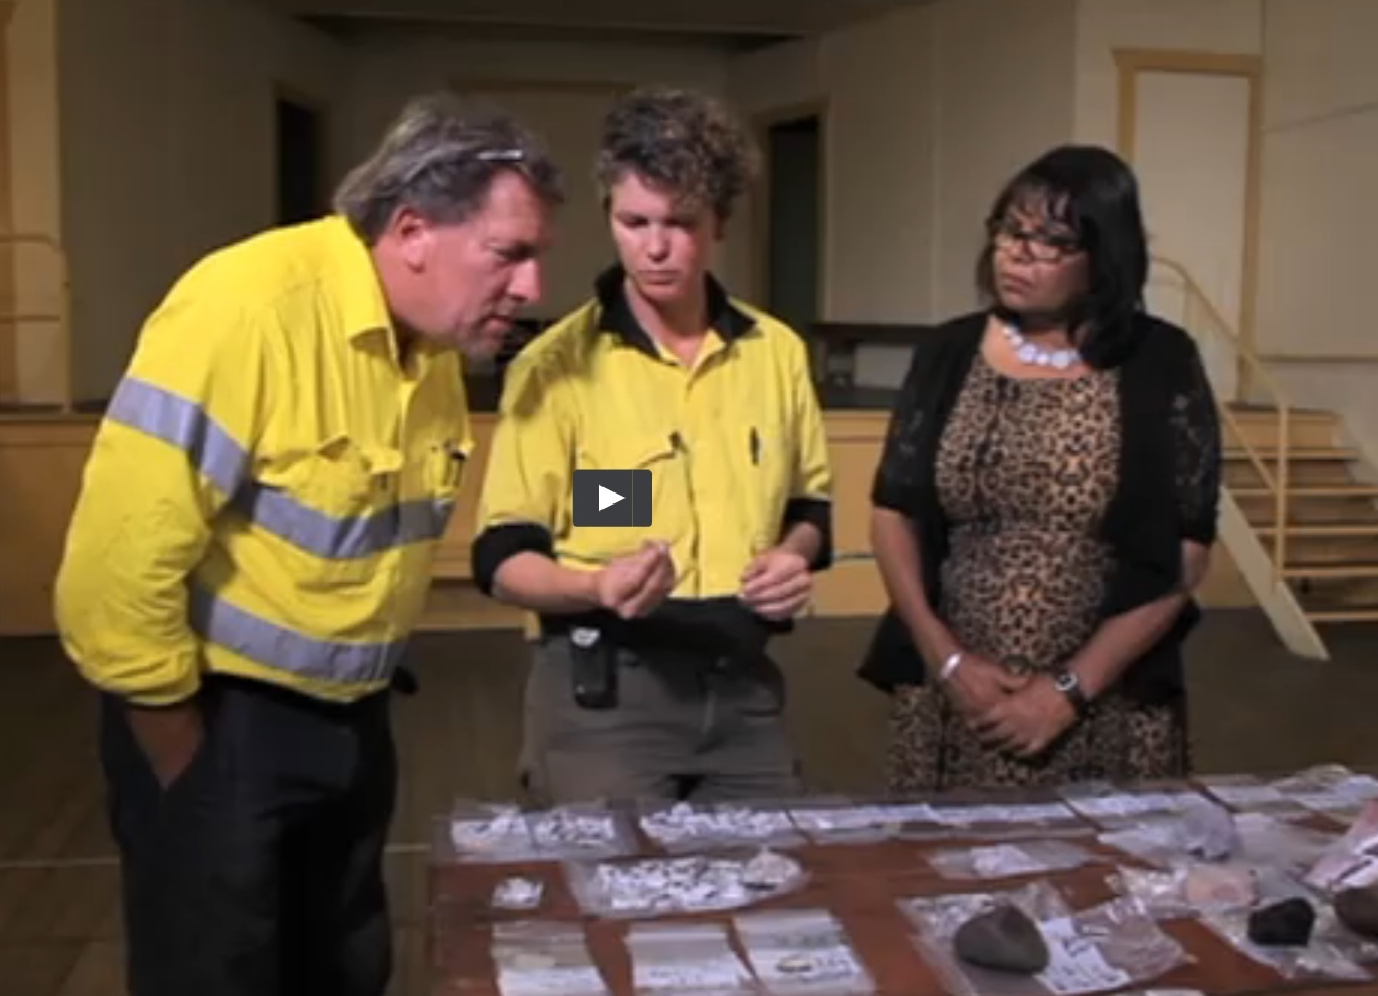 Anthony Barham, Rebecca Parkes and Lois Cook discussing salvage finds from Cooks Hill